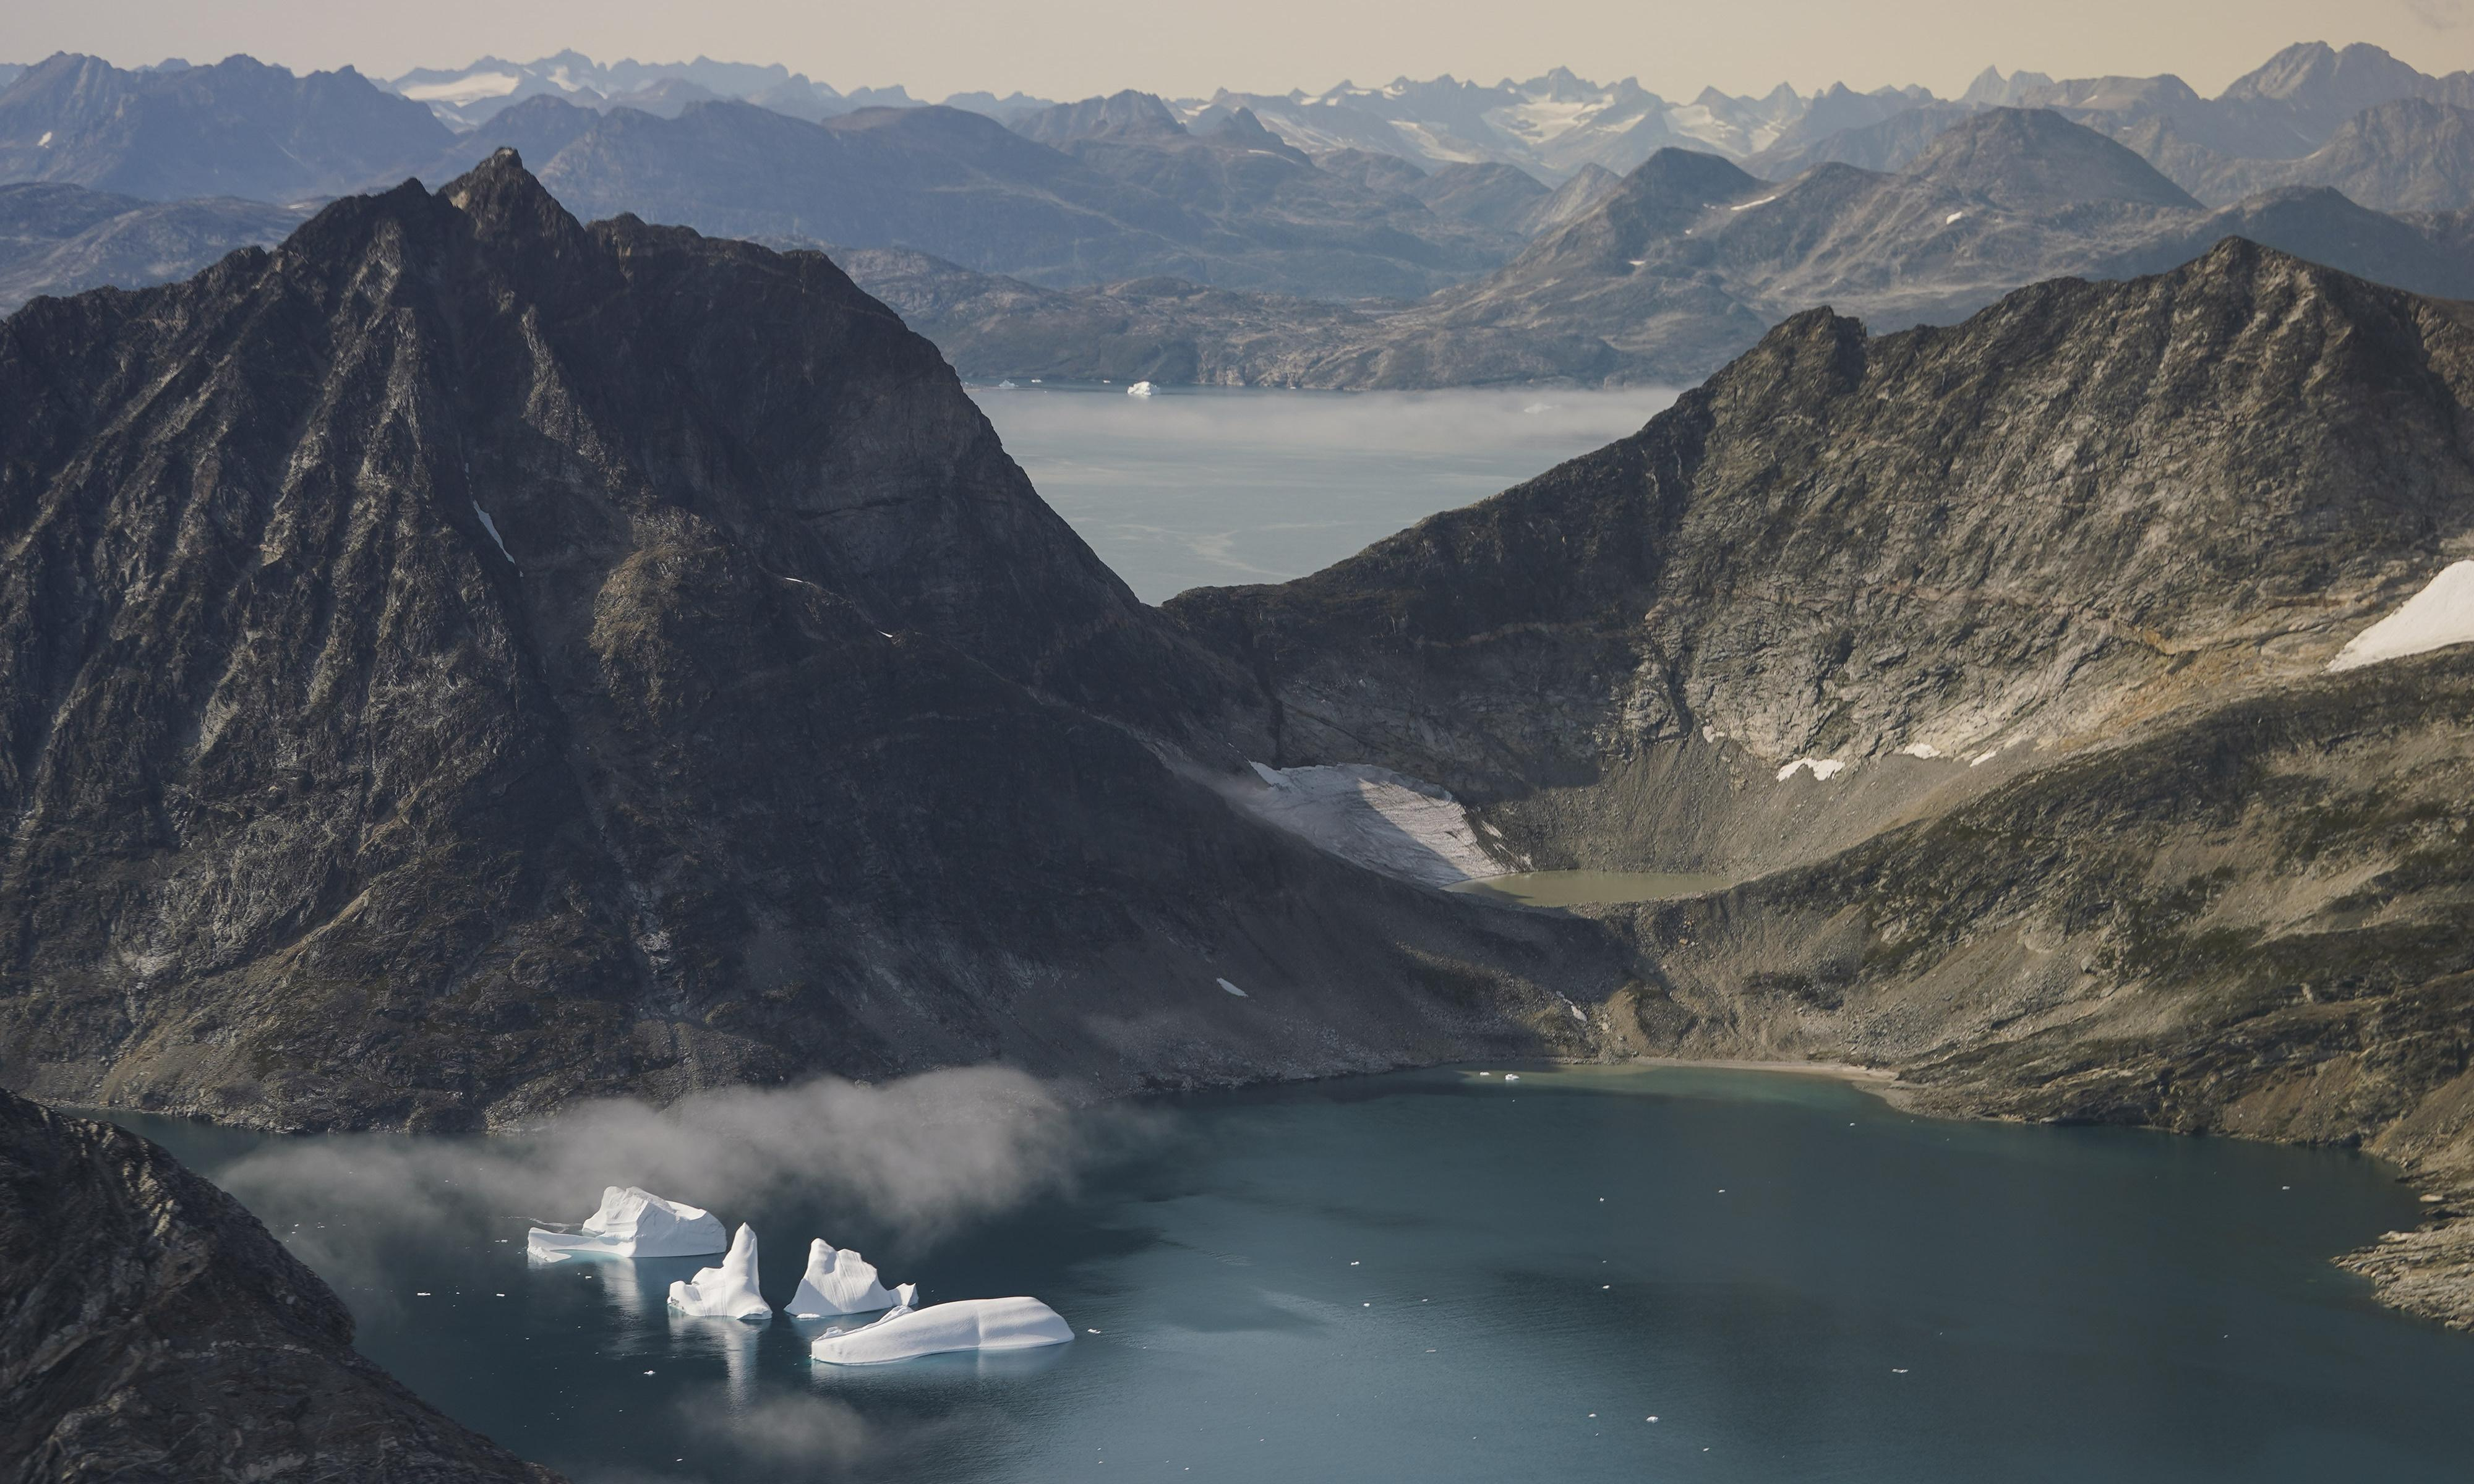 Donald Trump reportedly wants to purchase Greenland from Denmark